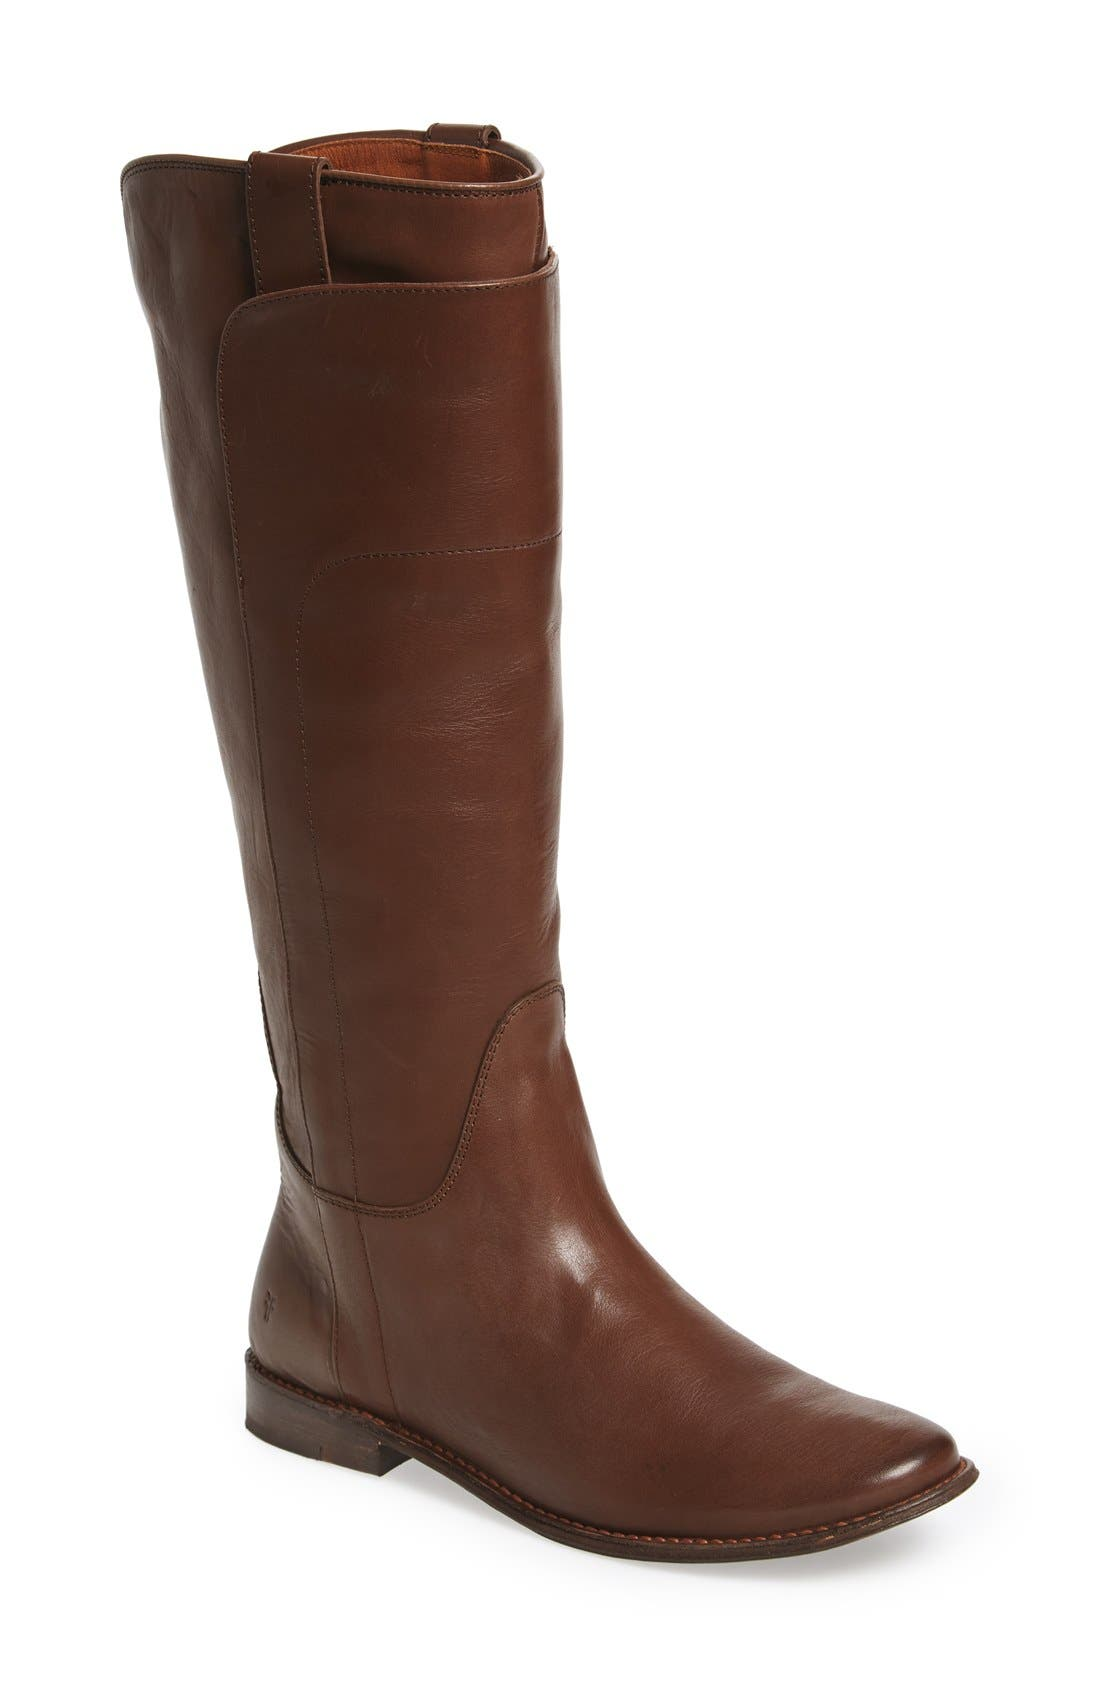 Main Image - Frye 'Paige' Tall Riding Boot (Women) (Wide Calf)